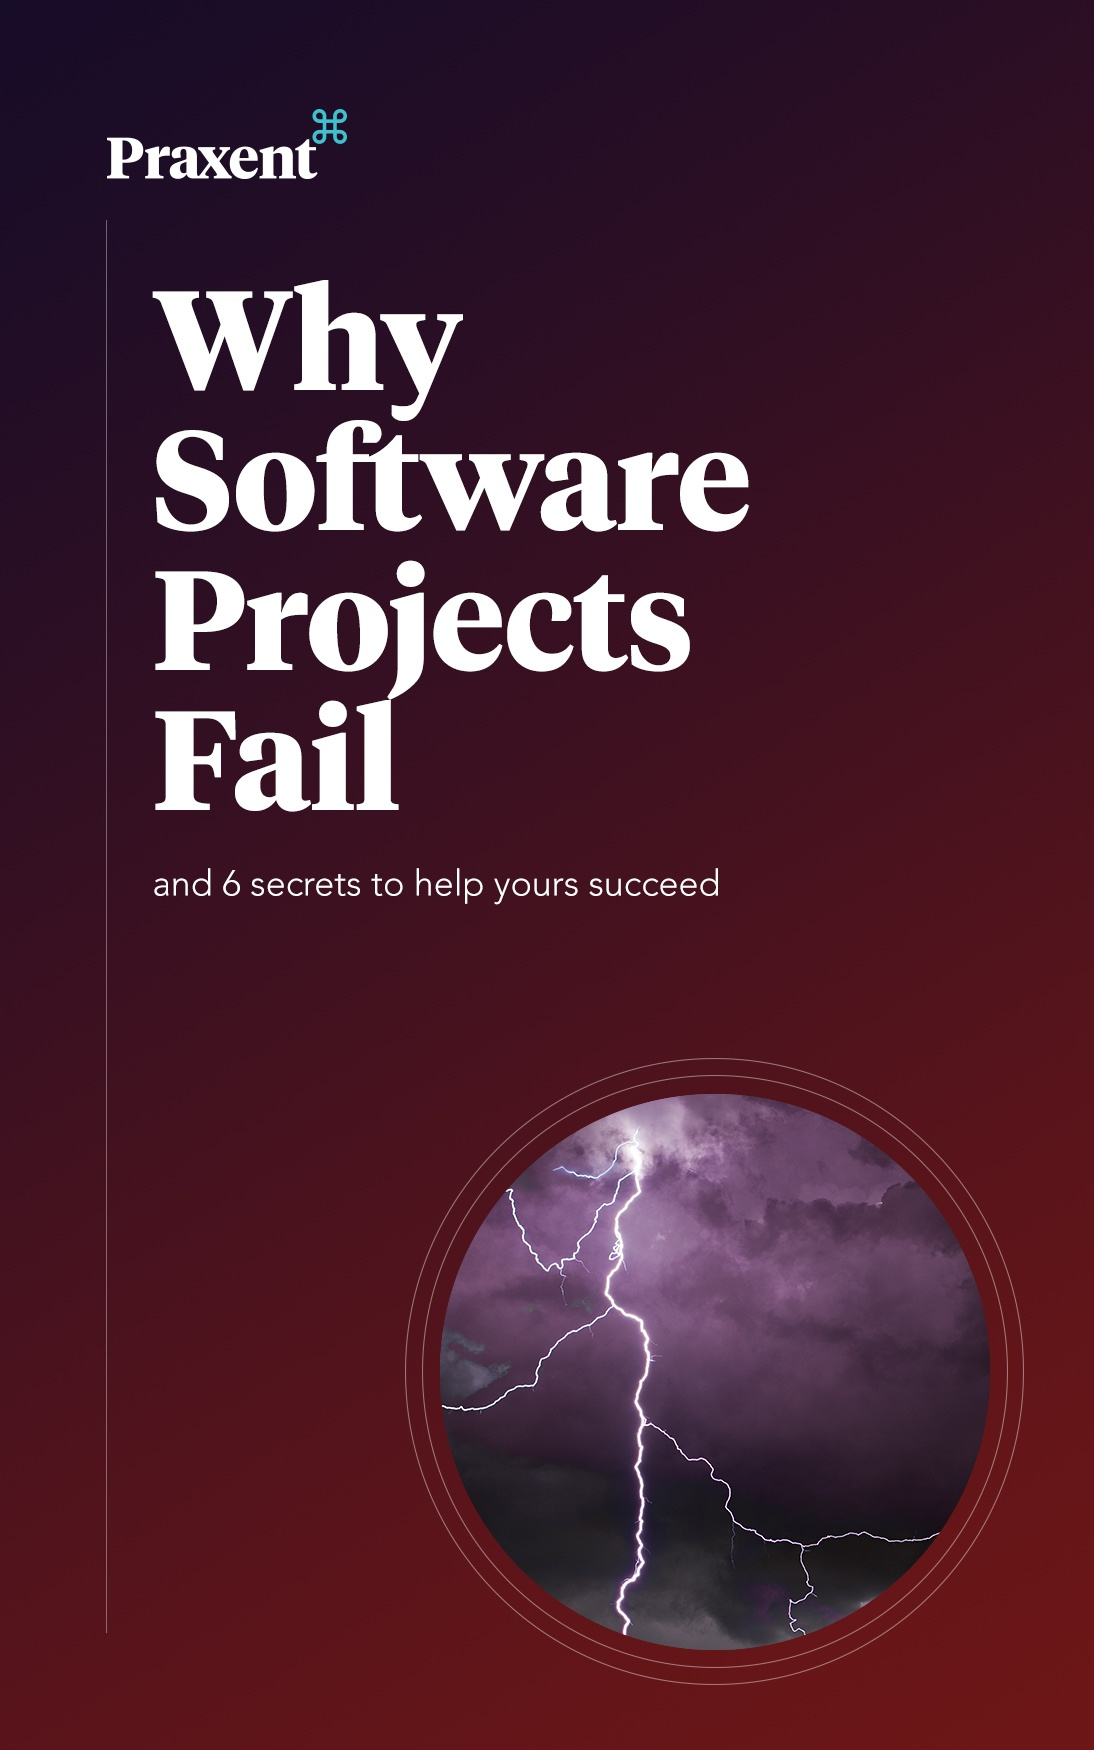 whysoftwarefails_cover.jpg